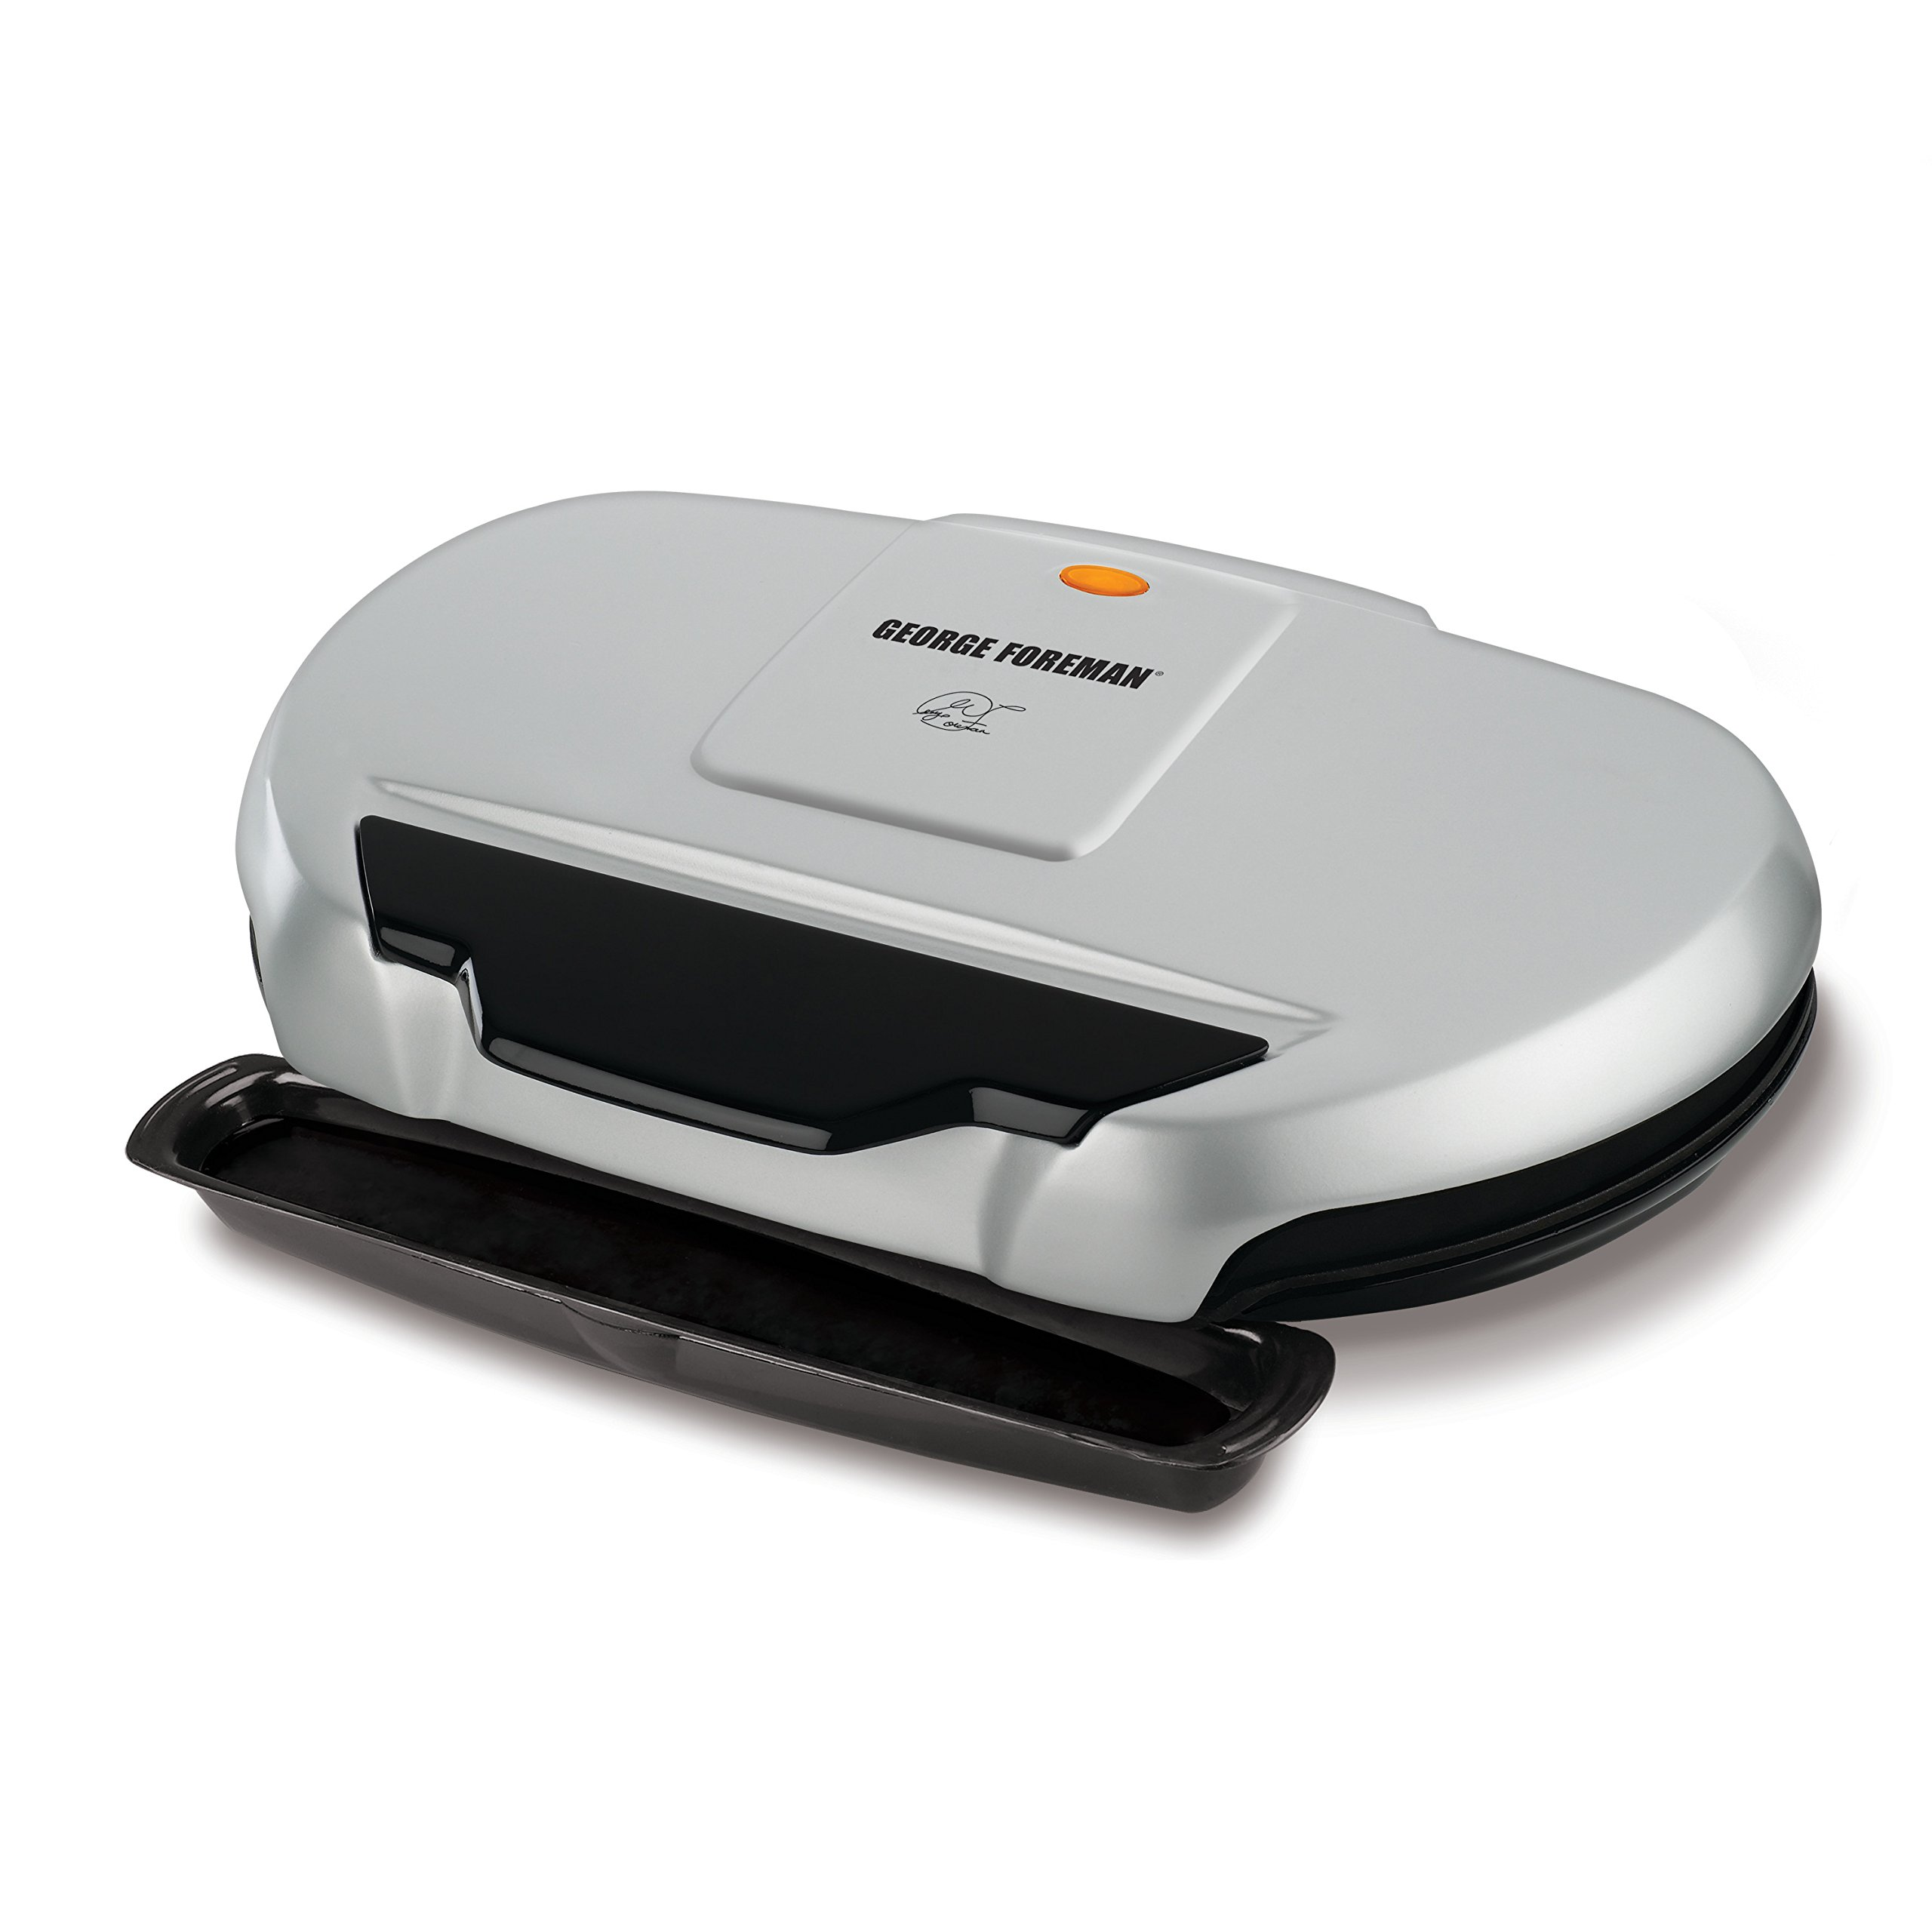 George Foreman 9-Serving Classic Plate Electric Grill and Panini Press, Silver, GR144 by George Foreman